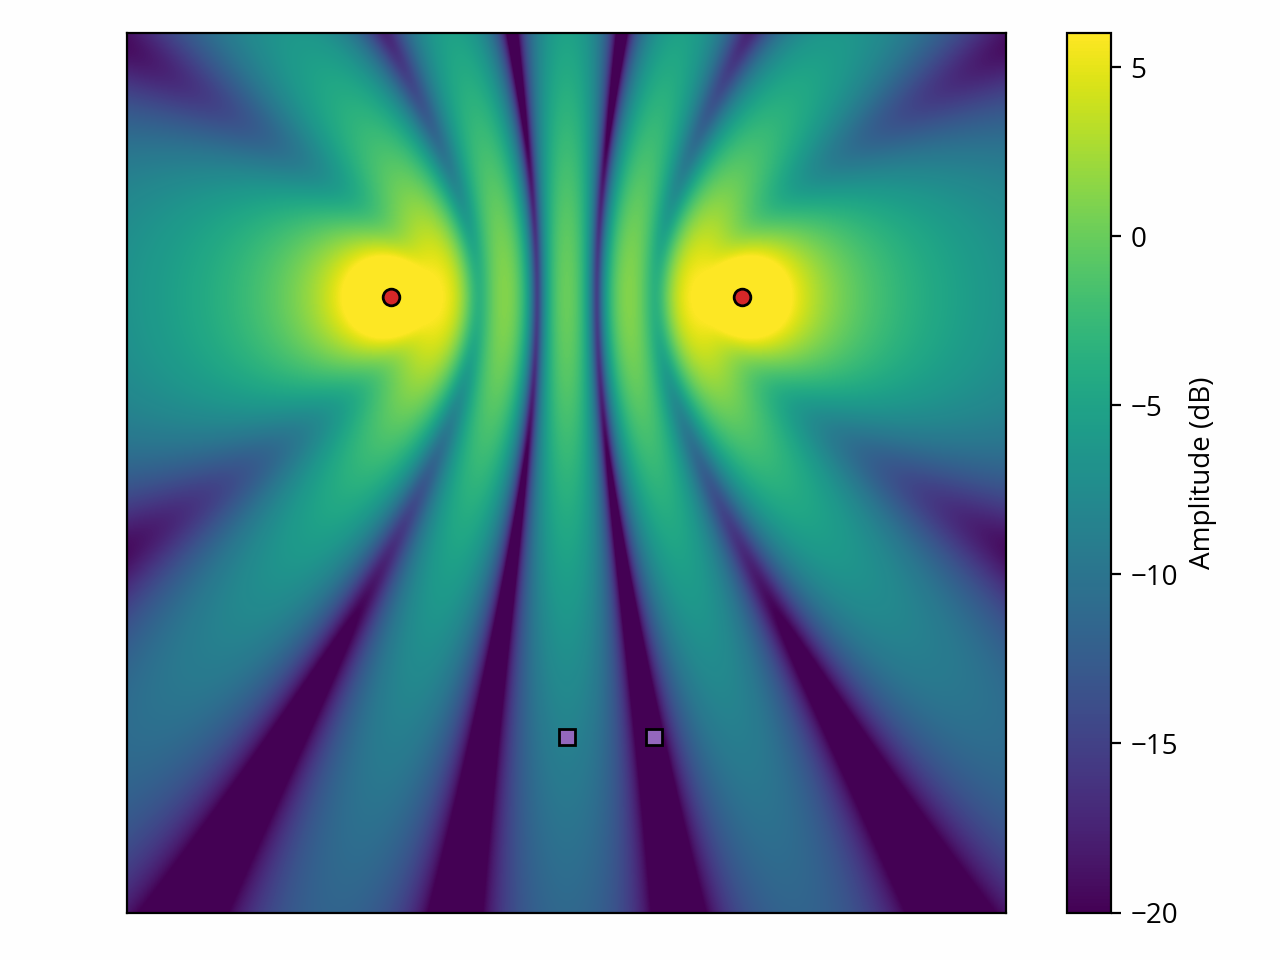 Two point sources, amplitude map with spreading